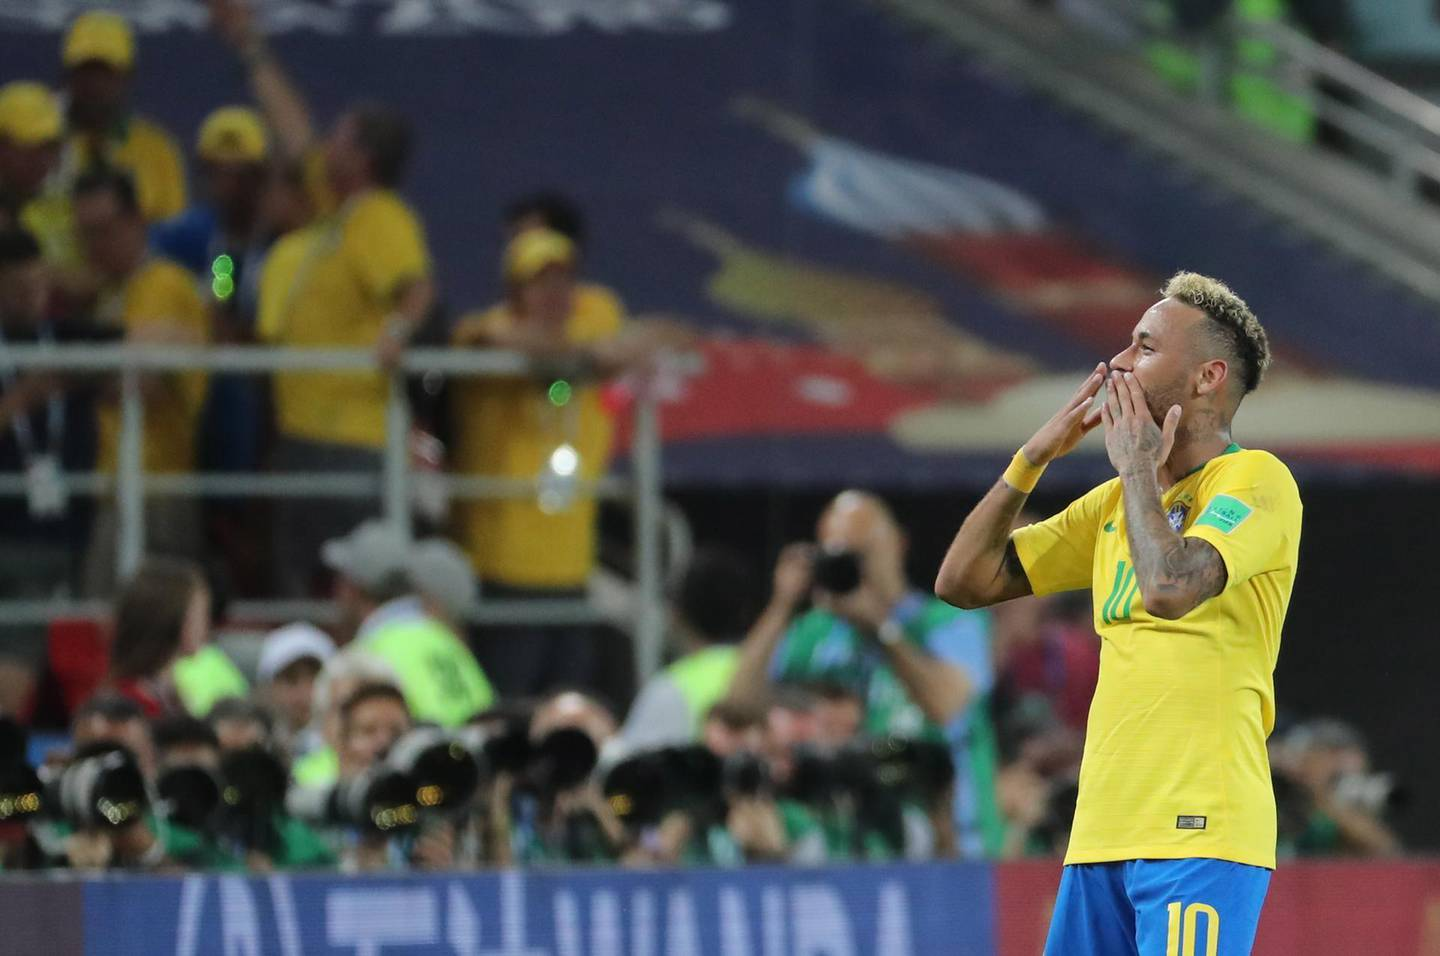 epa06845876 Neymar of Brazil reacts after the FIFA World Cup 2018 group E preliminary round soccer match between Serbia and Brazil in Moscow, Russia, 27 June 2018. Brazil won the match 2-0.  (RESTRICTIONS APPLY: Editorial Use Only, not used in association with any commercial entity - Images must not be used in any form of alert service or push service of any kind including via mobile alert services, downloads to mobile devices or MMS messaging - Images must appear as still images and must not emulate match action video footage - No alteration is made to, and no text or image is superimposed over, any published image which: (a) intentionally obscures or removes a sponsor identification image; or (b) adds or overlays the commercial identification of any third party which is not officially associated with the FIFA World Cup)  EPA/ABEDIN TAHERKENAREH   EDITORIAL USE ONLY